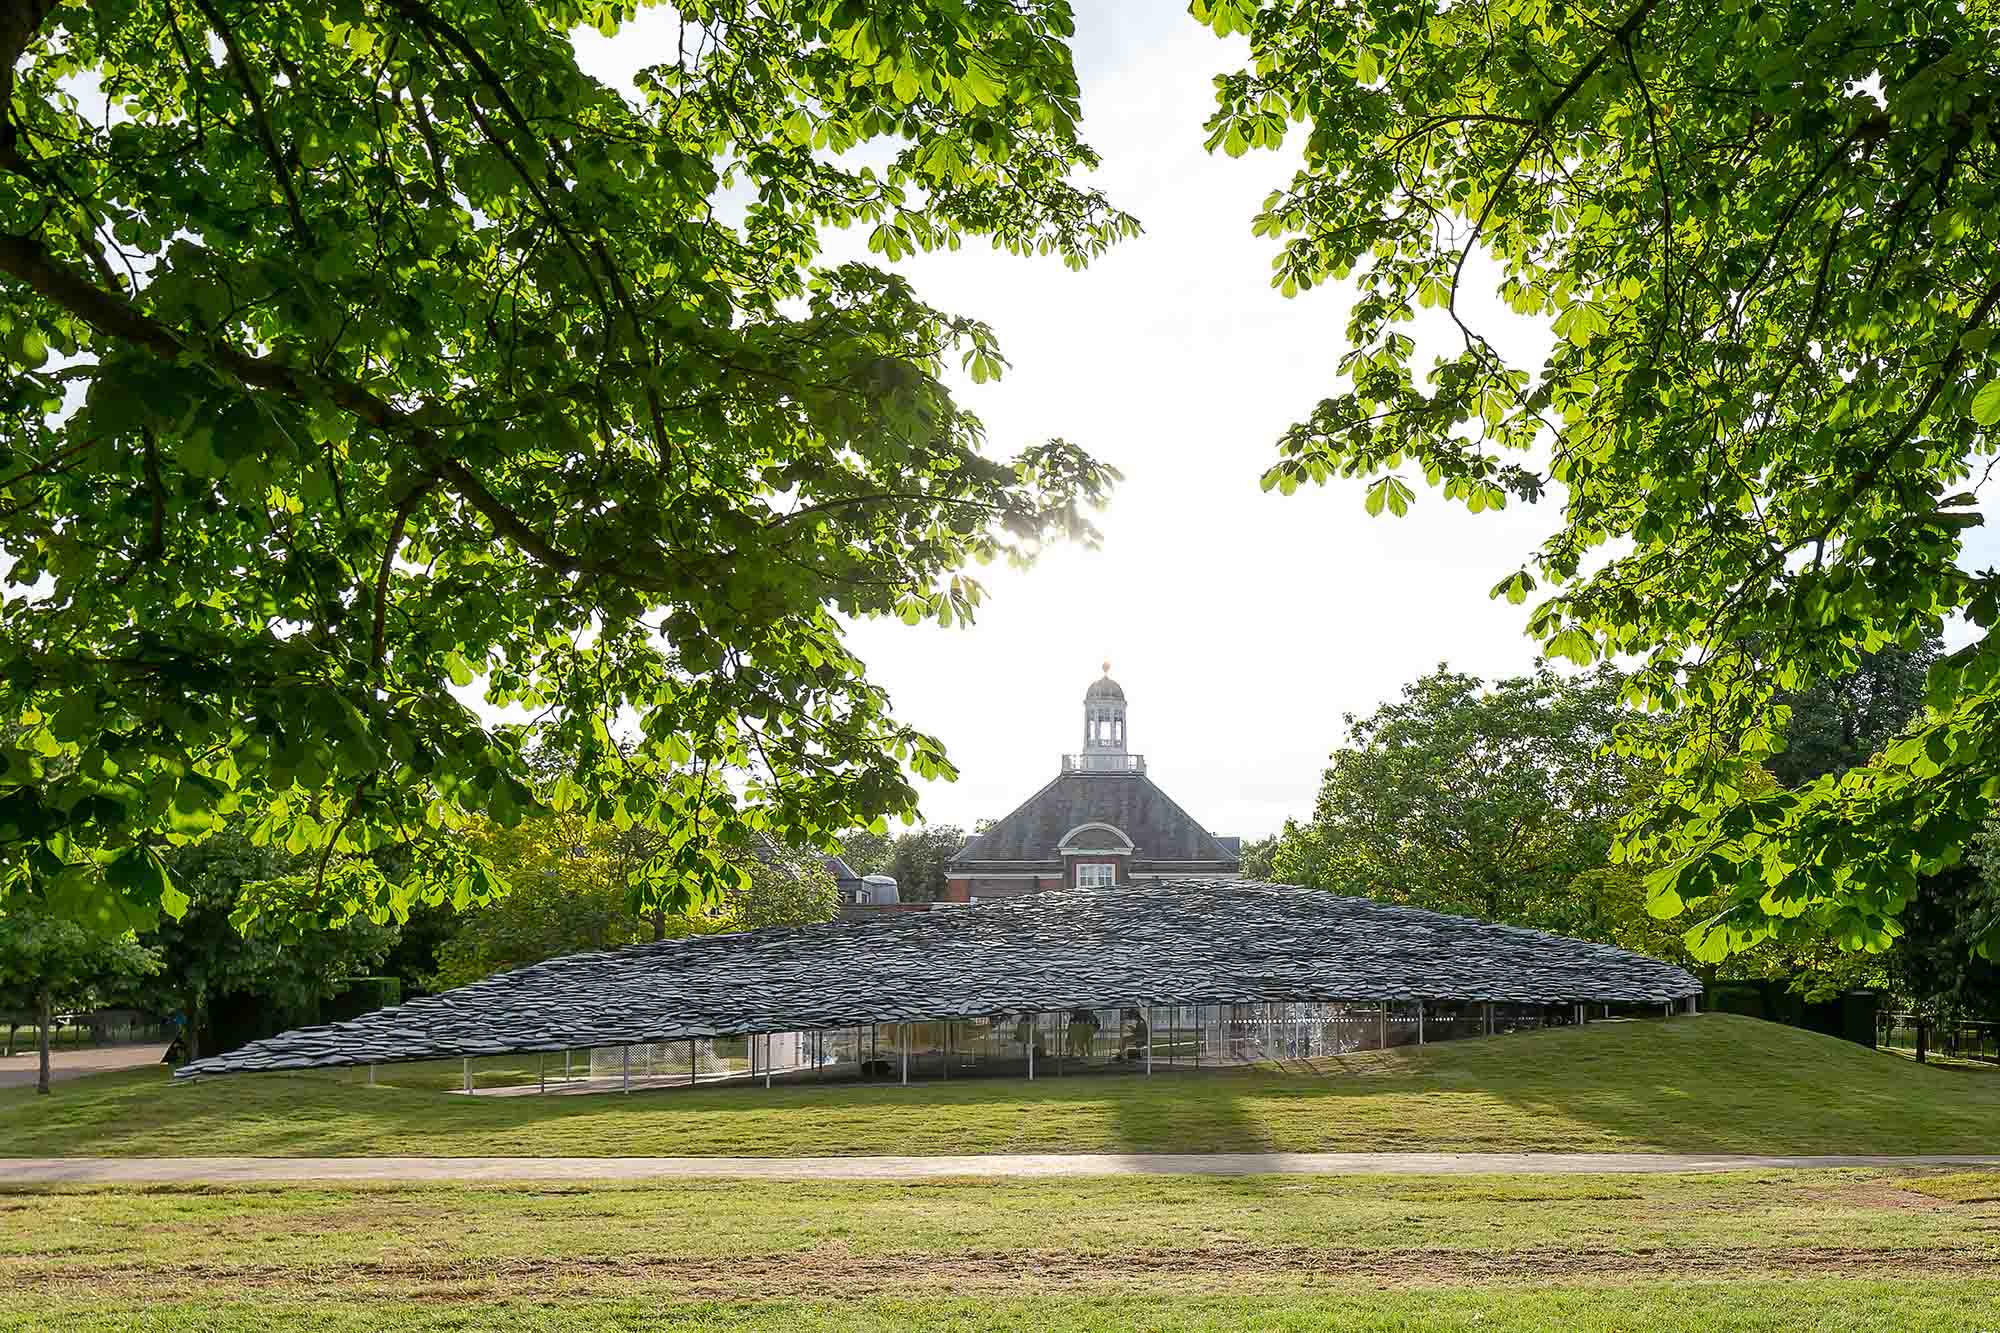 The 2019 Serpentine Pavilion by Junya Ishigami